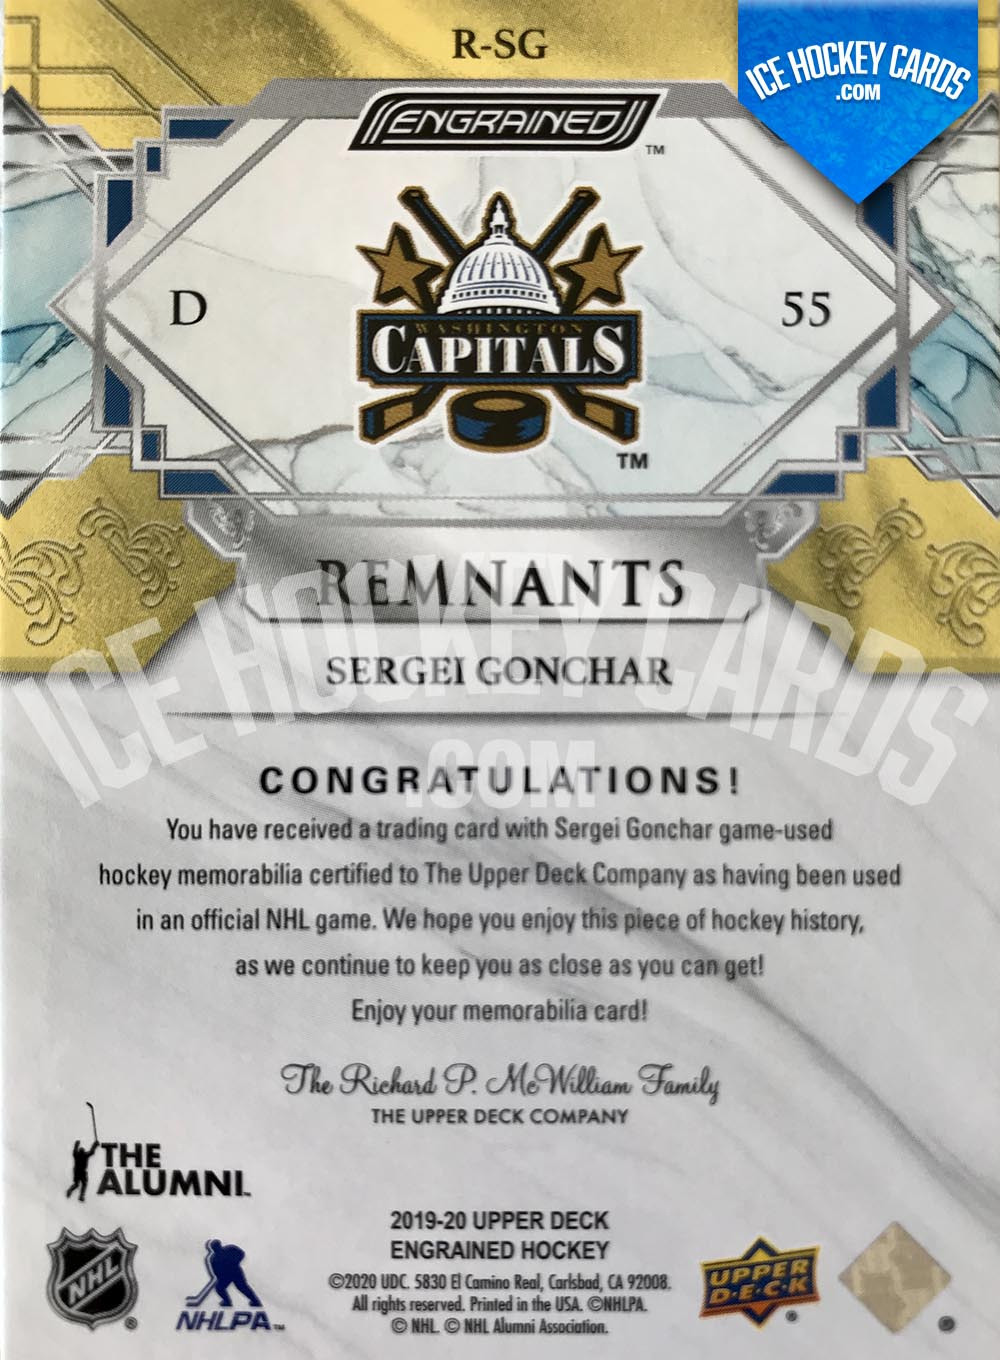 Upper Deck - Engrained 2019-20 - Sergei Gonchar The Alumni Remnants Sticks Gold Card # to 35 back